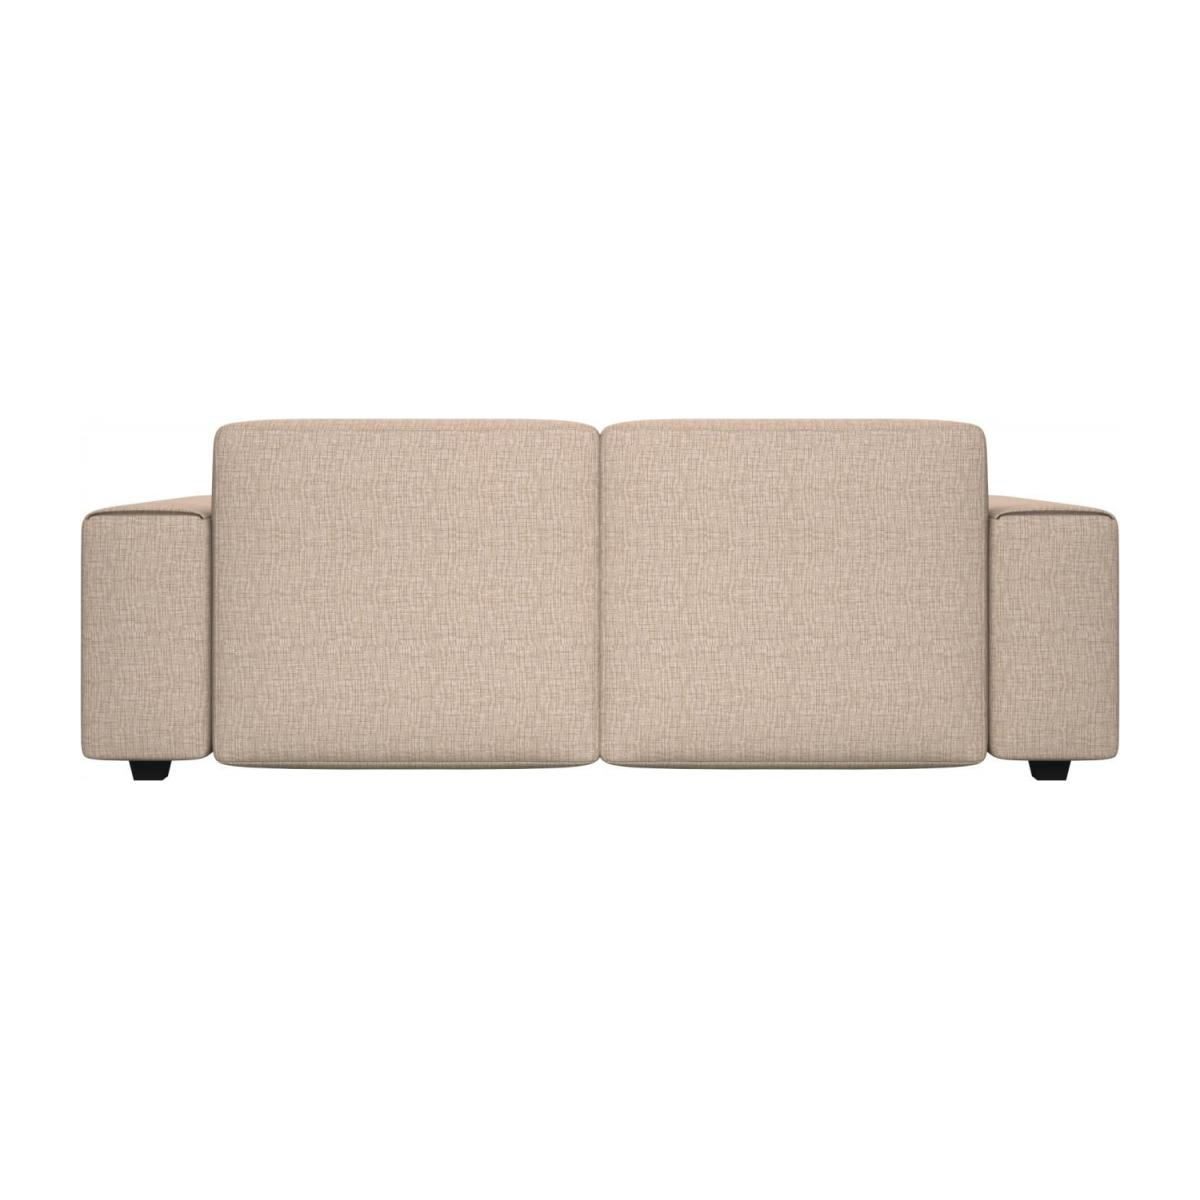 3 seater sofa in Ancio fabric, nature n°3